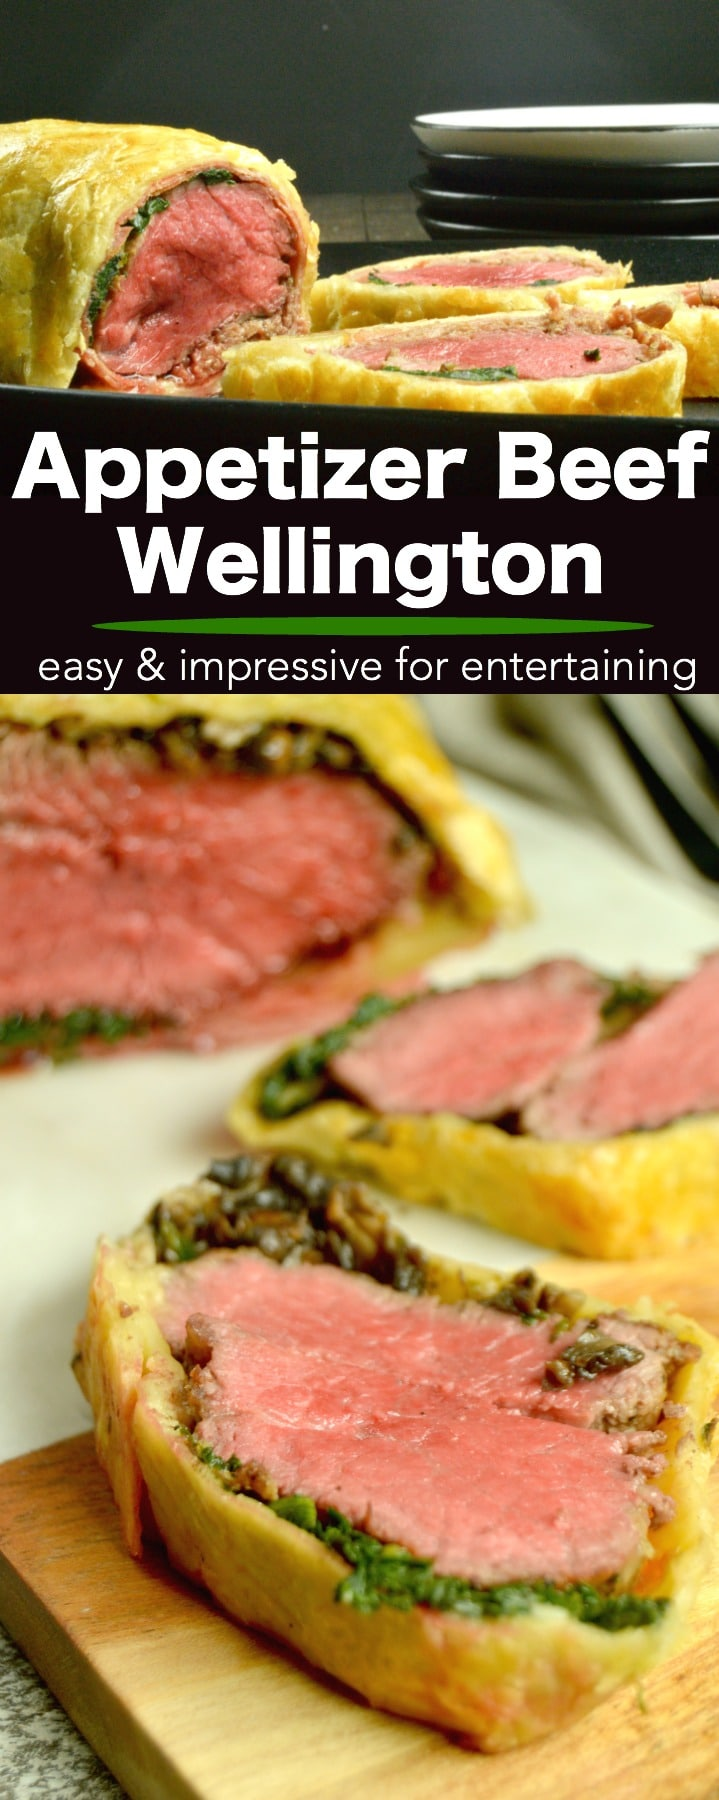 Beef Wellington Appetizers:  Tender steak smothered in mushroom pate wrapped in prosciutto then surrounded byPuff Pastry that is baked to light and flaky deliciousness. Perfect for all special occasion entertaining this holiday season, but easy enough to have just because they are delicious! #appetizers #holidayfood #entertaining #comfortfood #AD #InspiredByPuff